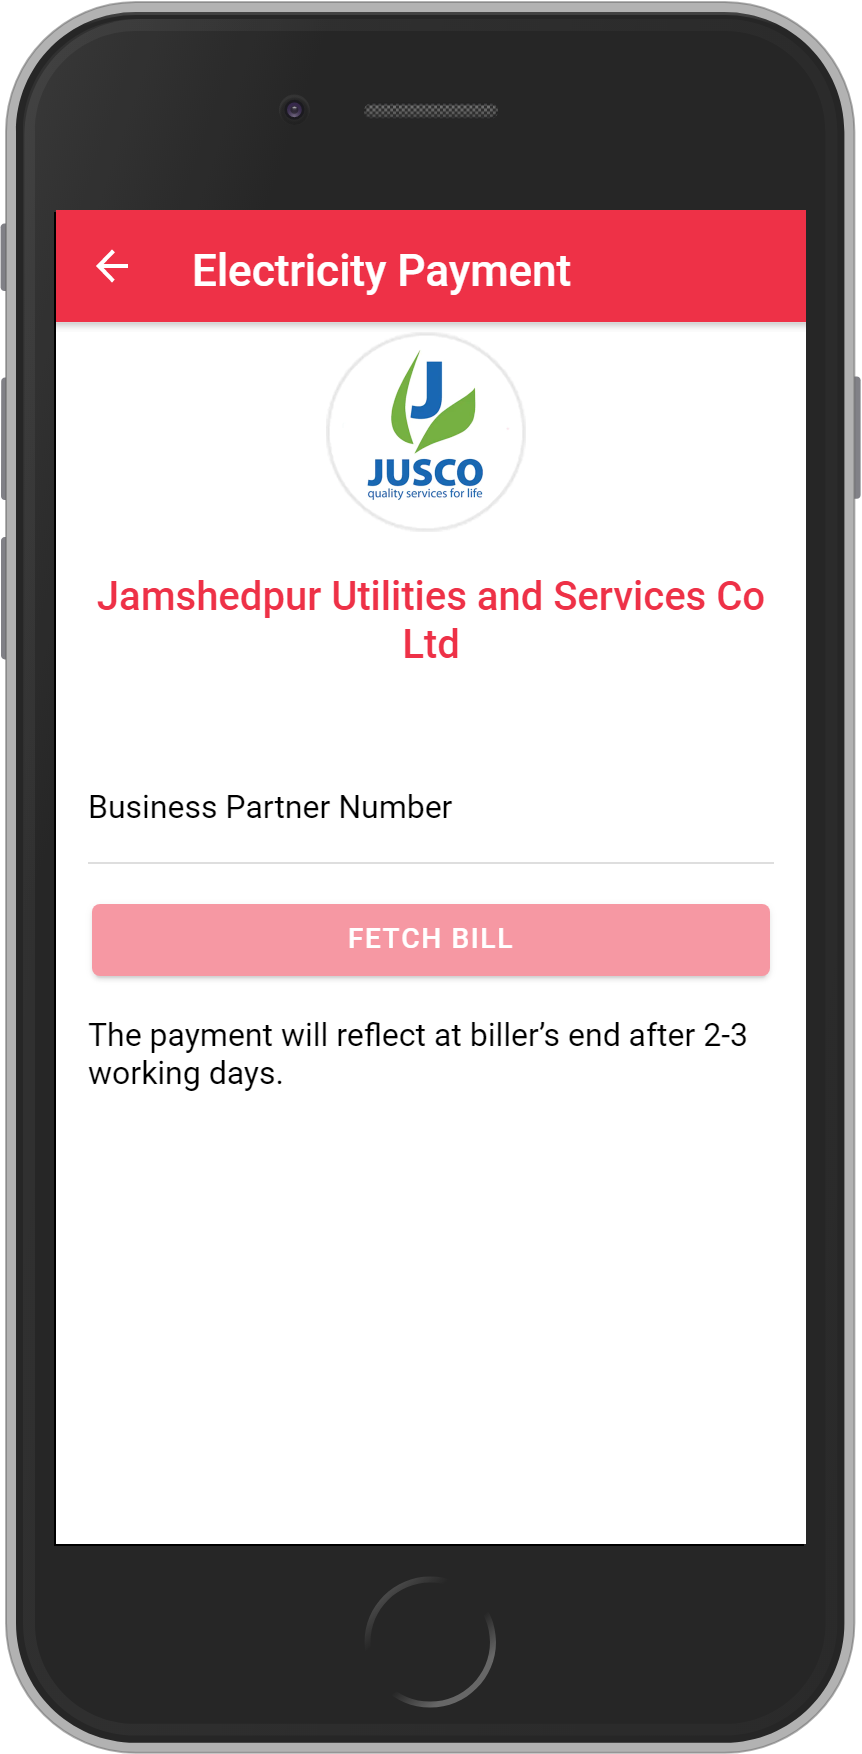 Get UNLIMITED <b>0.1%</b> CASHBACK on Jamshedpur Utilities & Services Company Bill Payment.